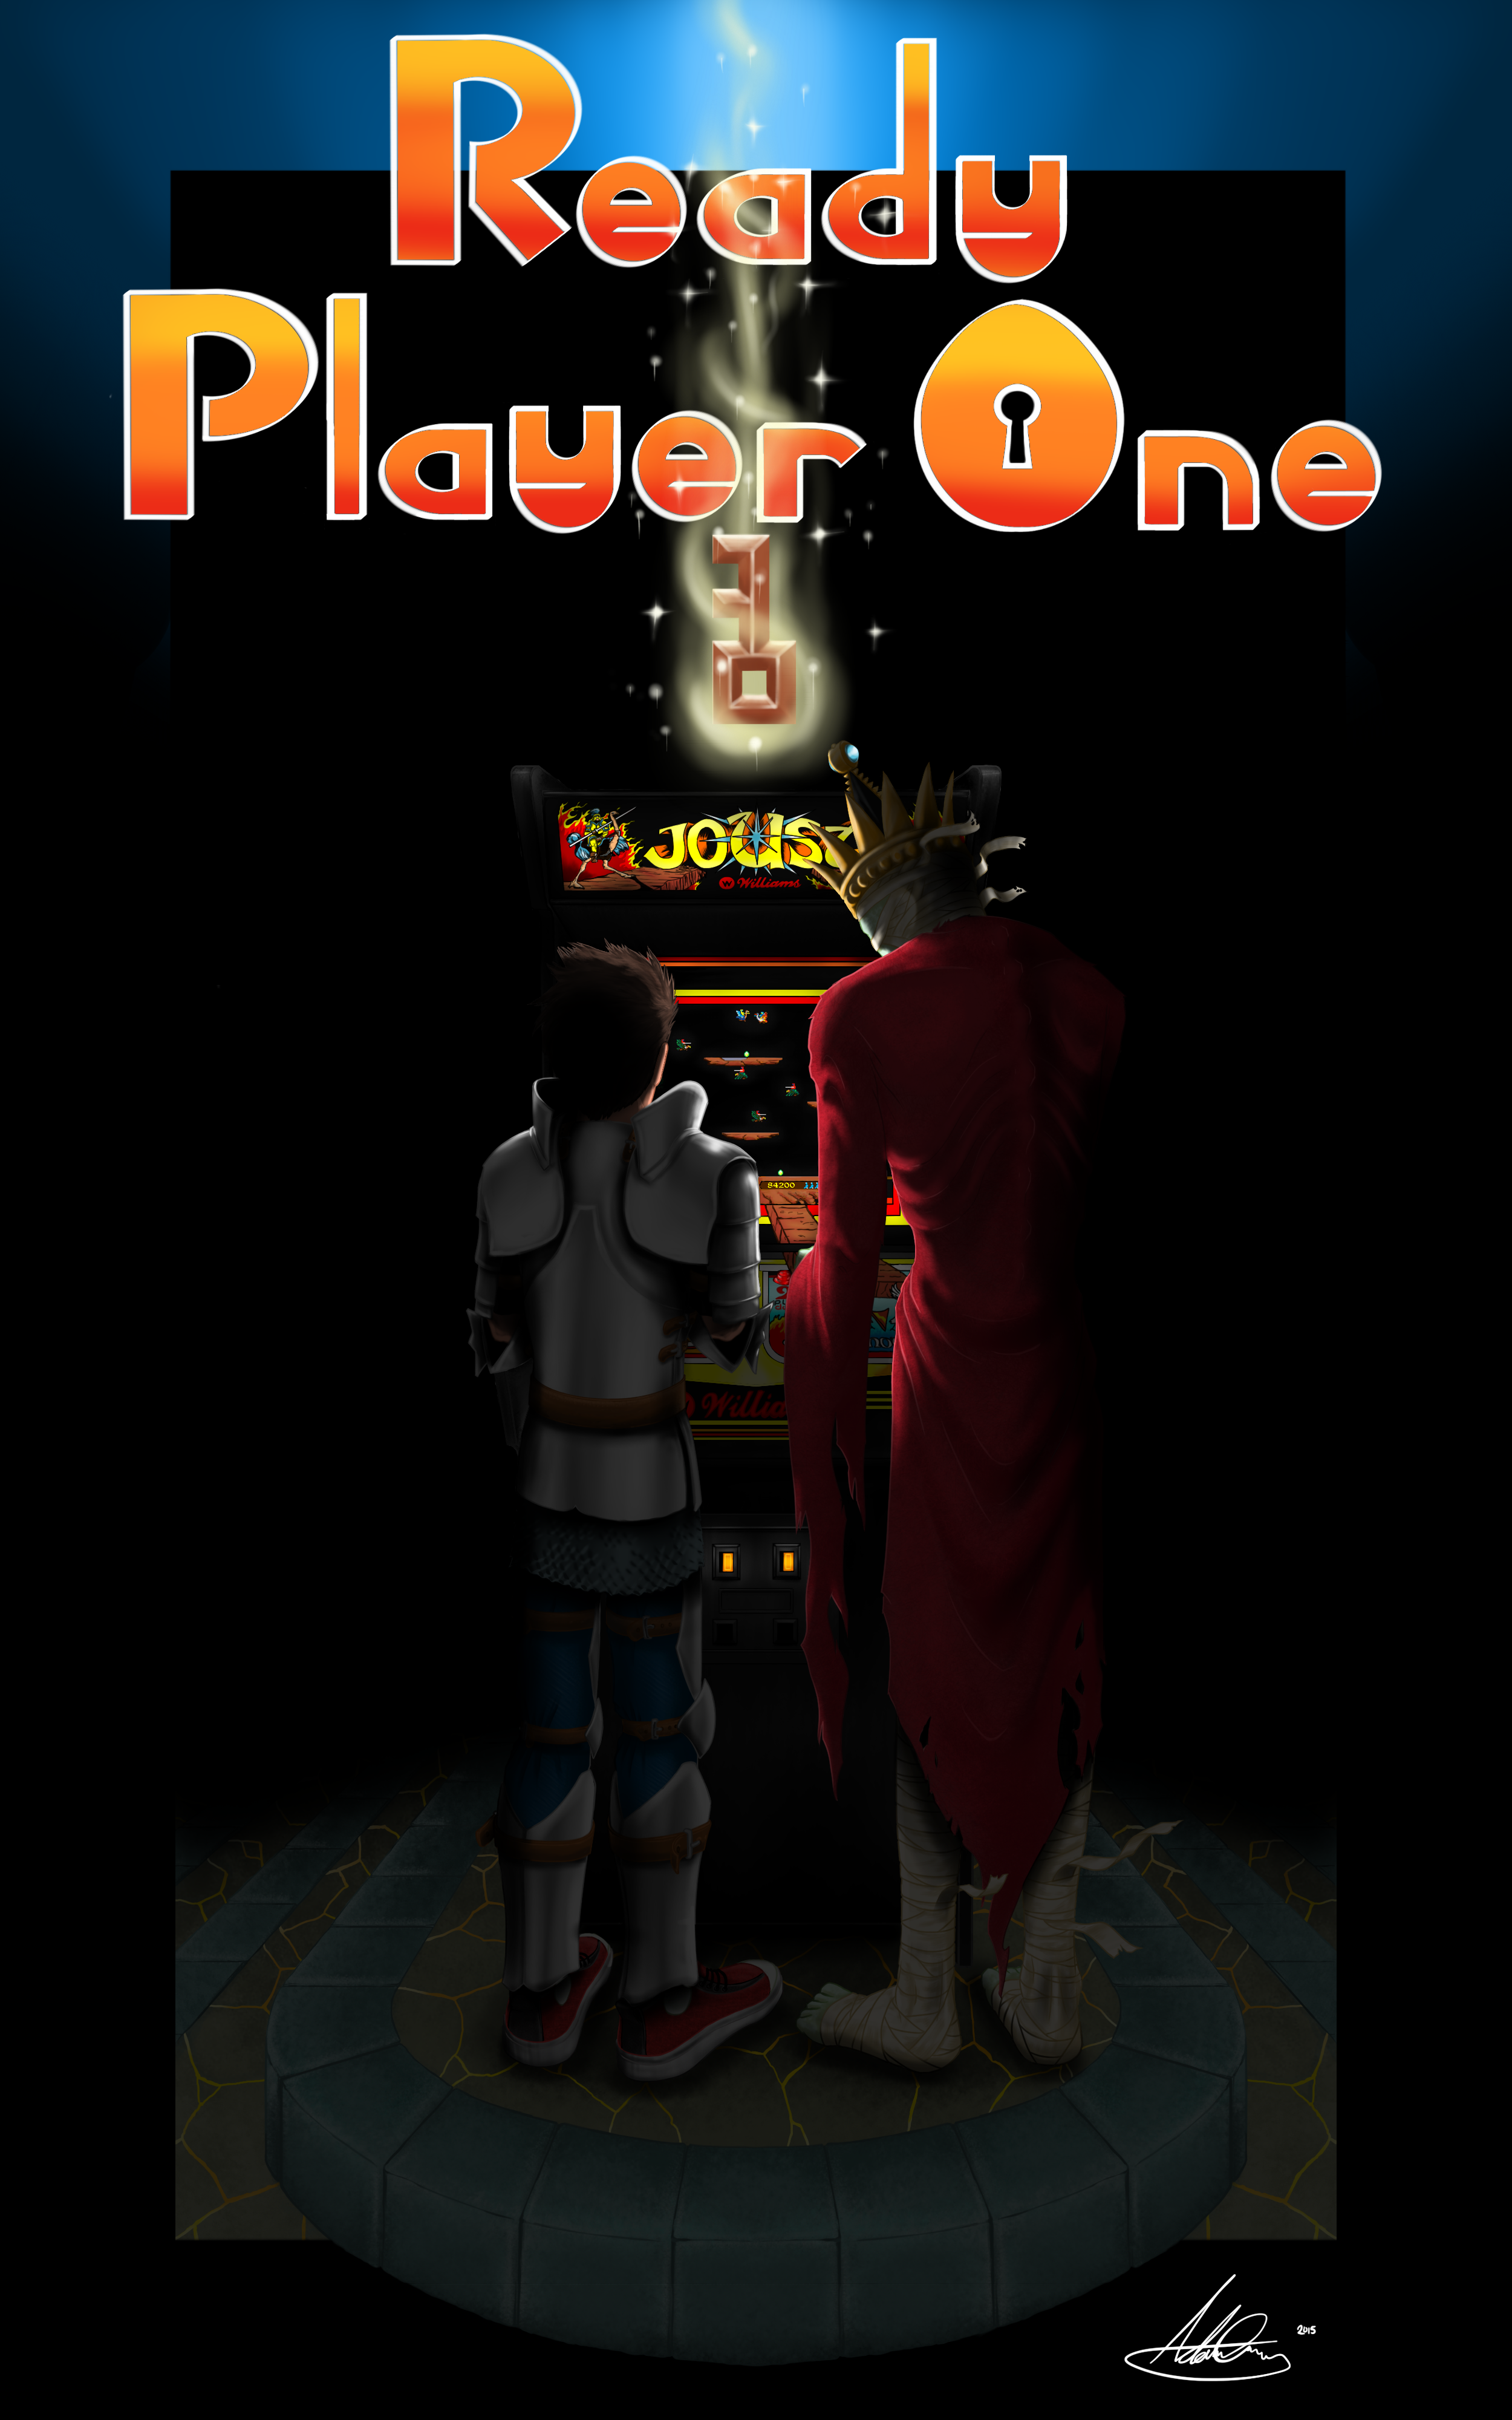 Free Download Ready Player One By Dead Bl00d 2500x4000 For Your